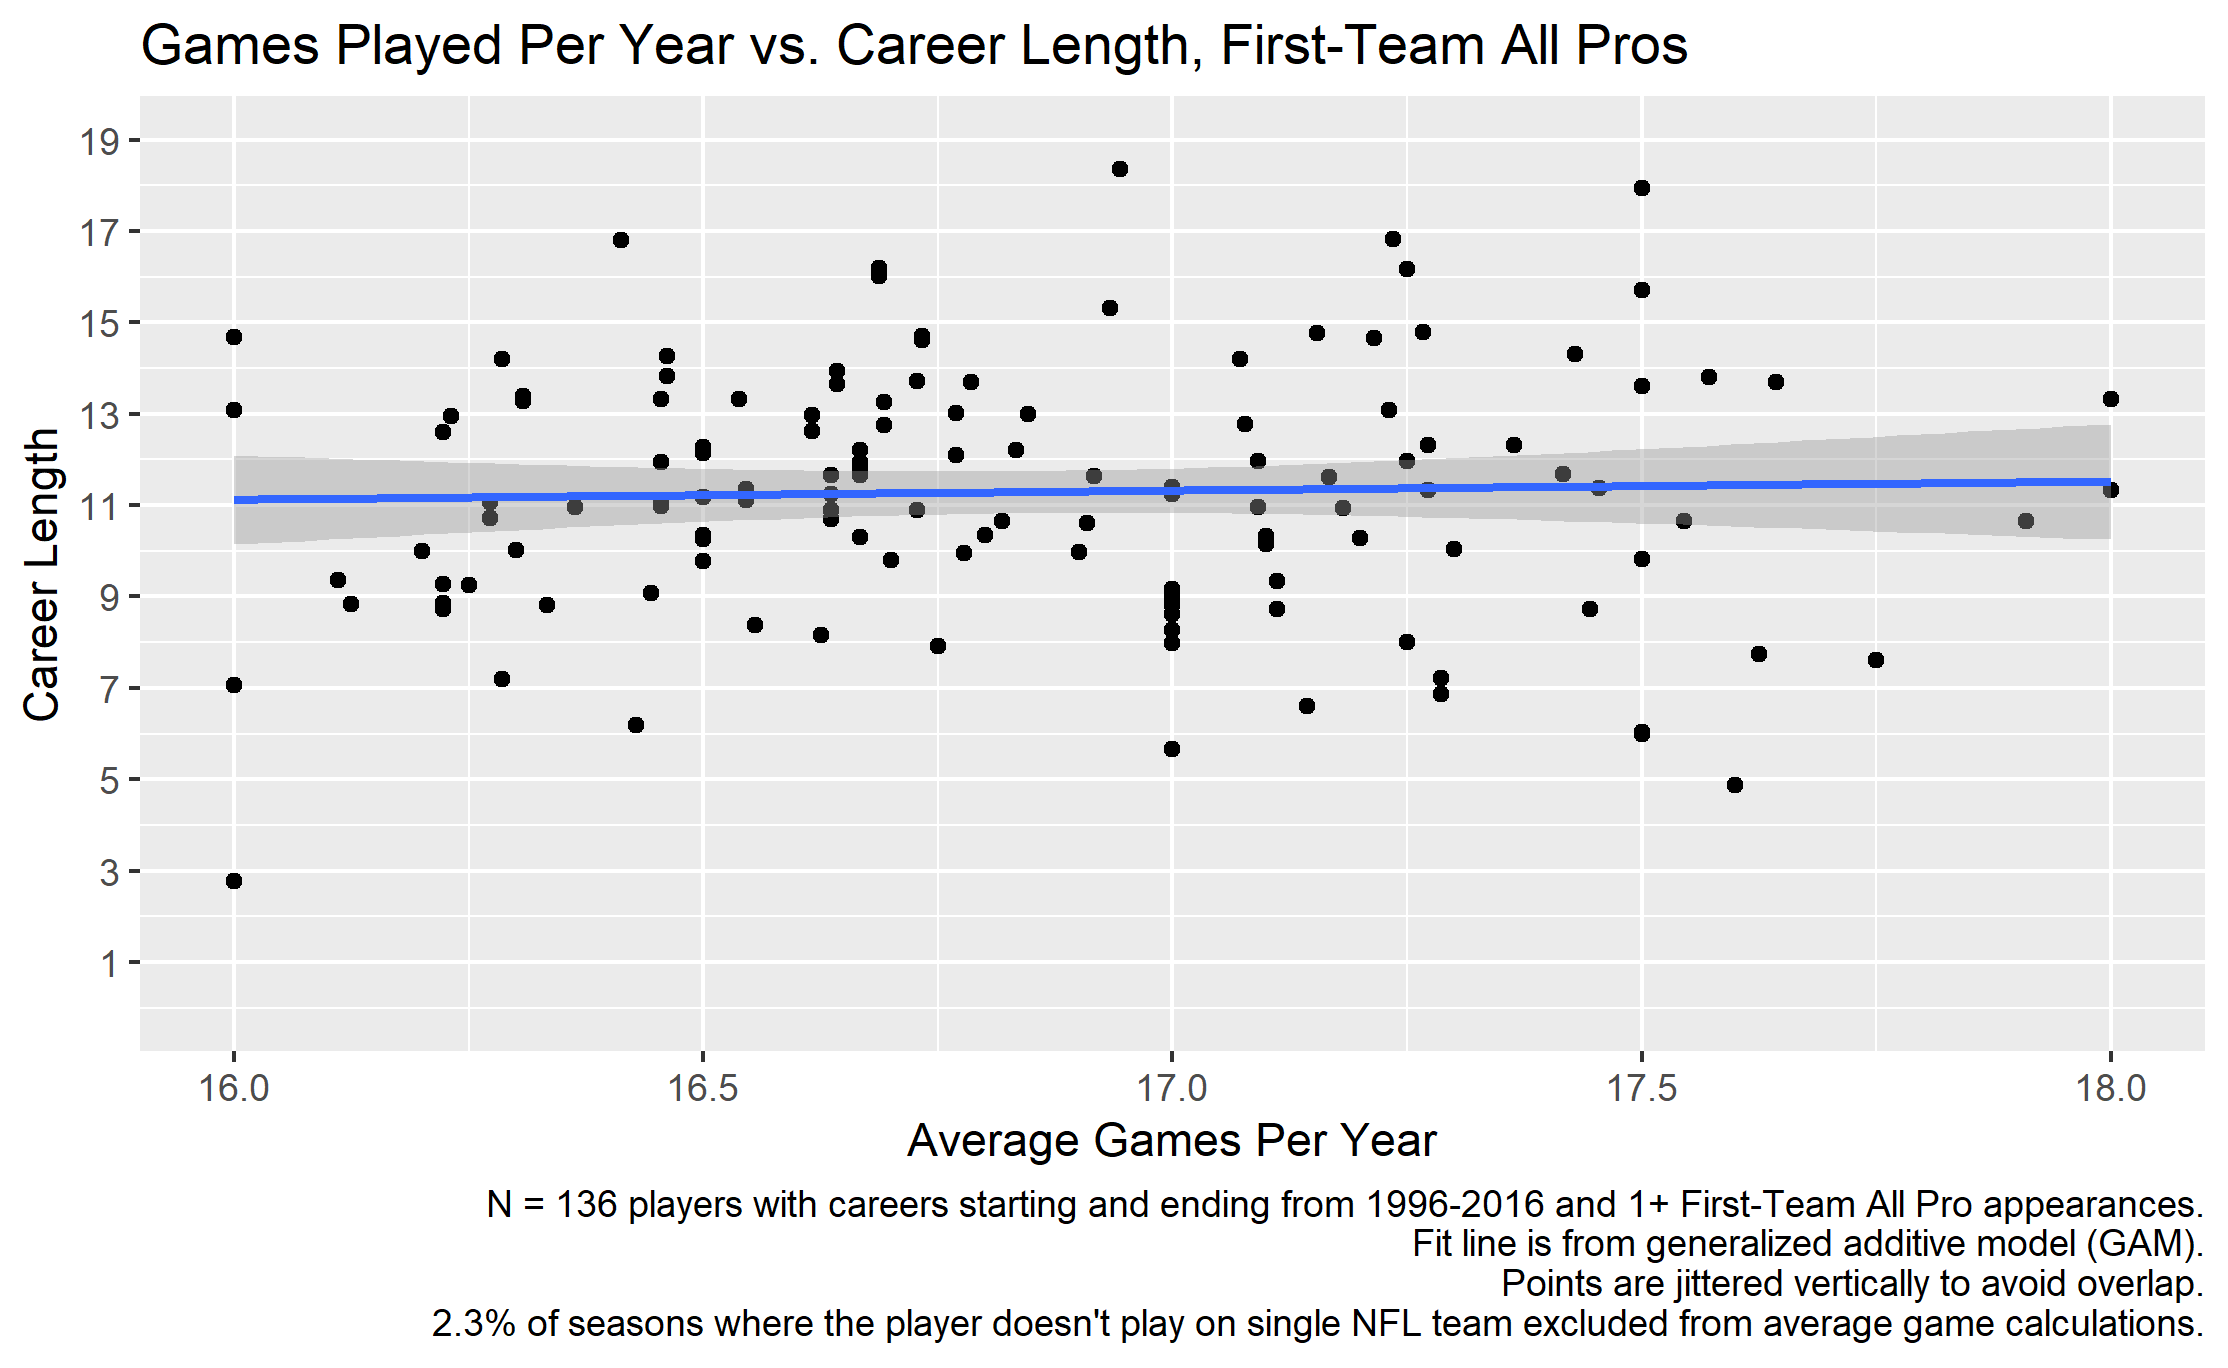 Career length vs games per season